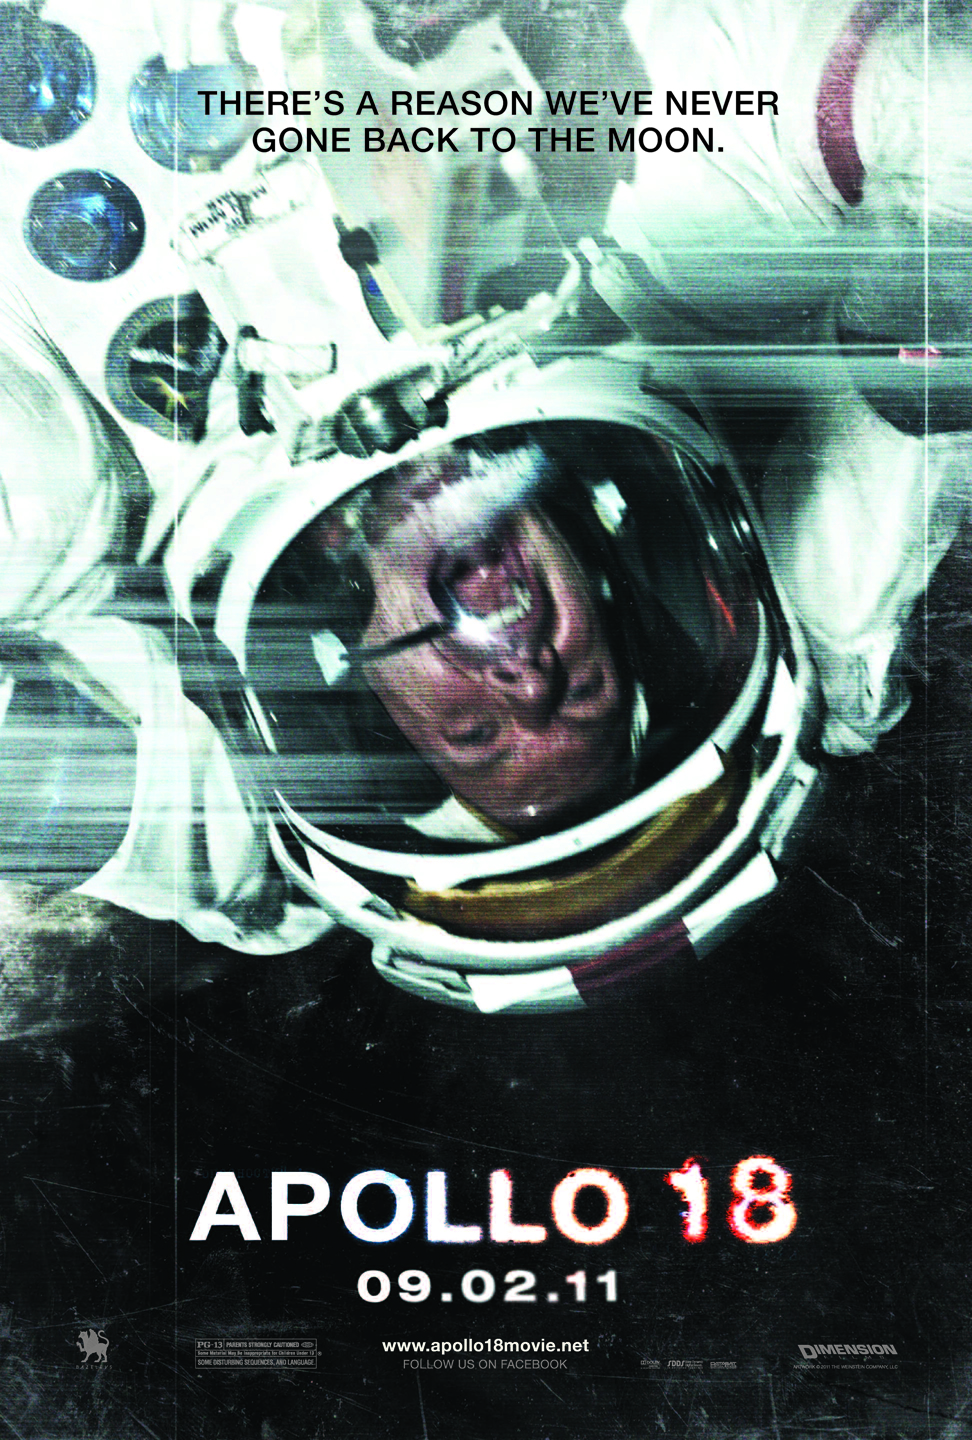 APOLLO 18 (2011) - New Poster | The Entertainment Factor